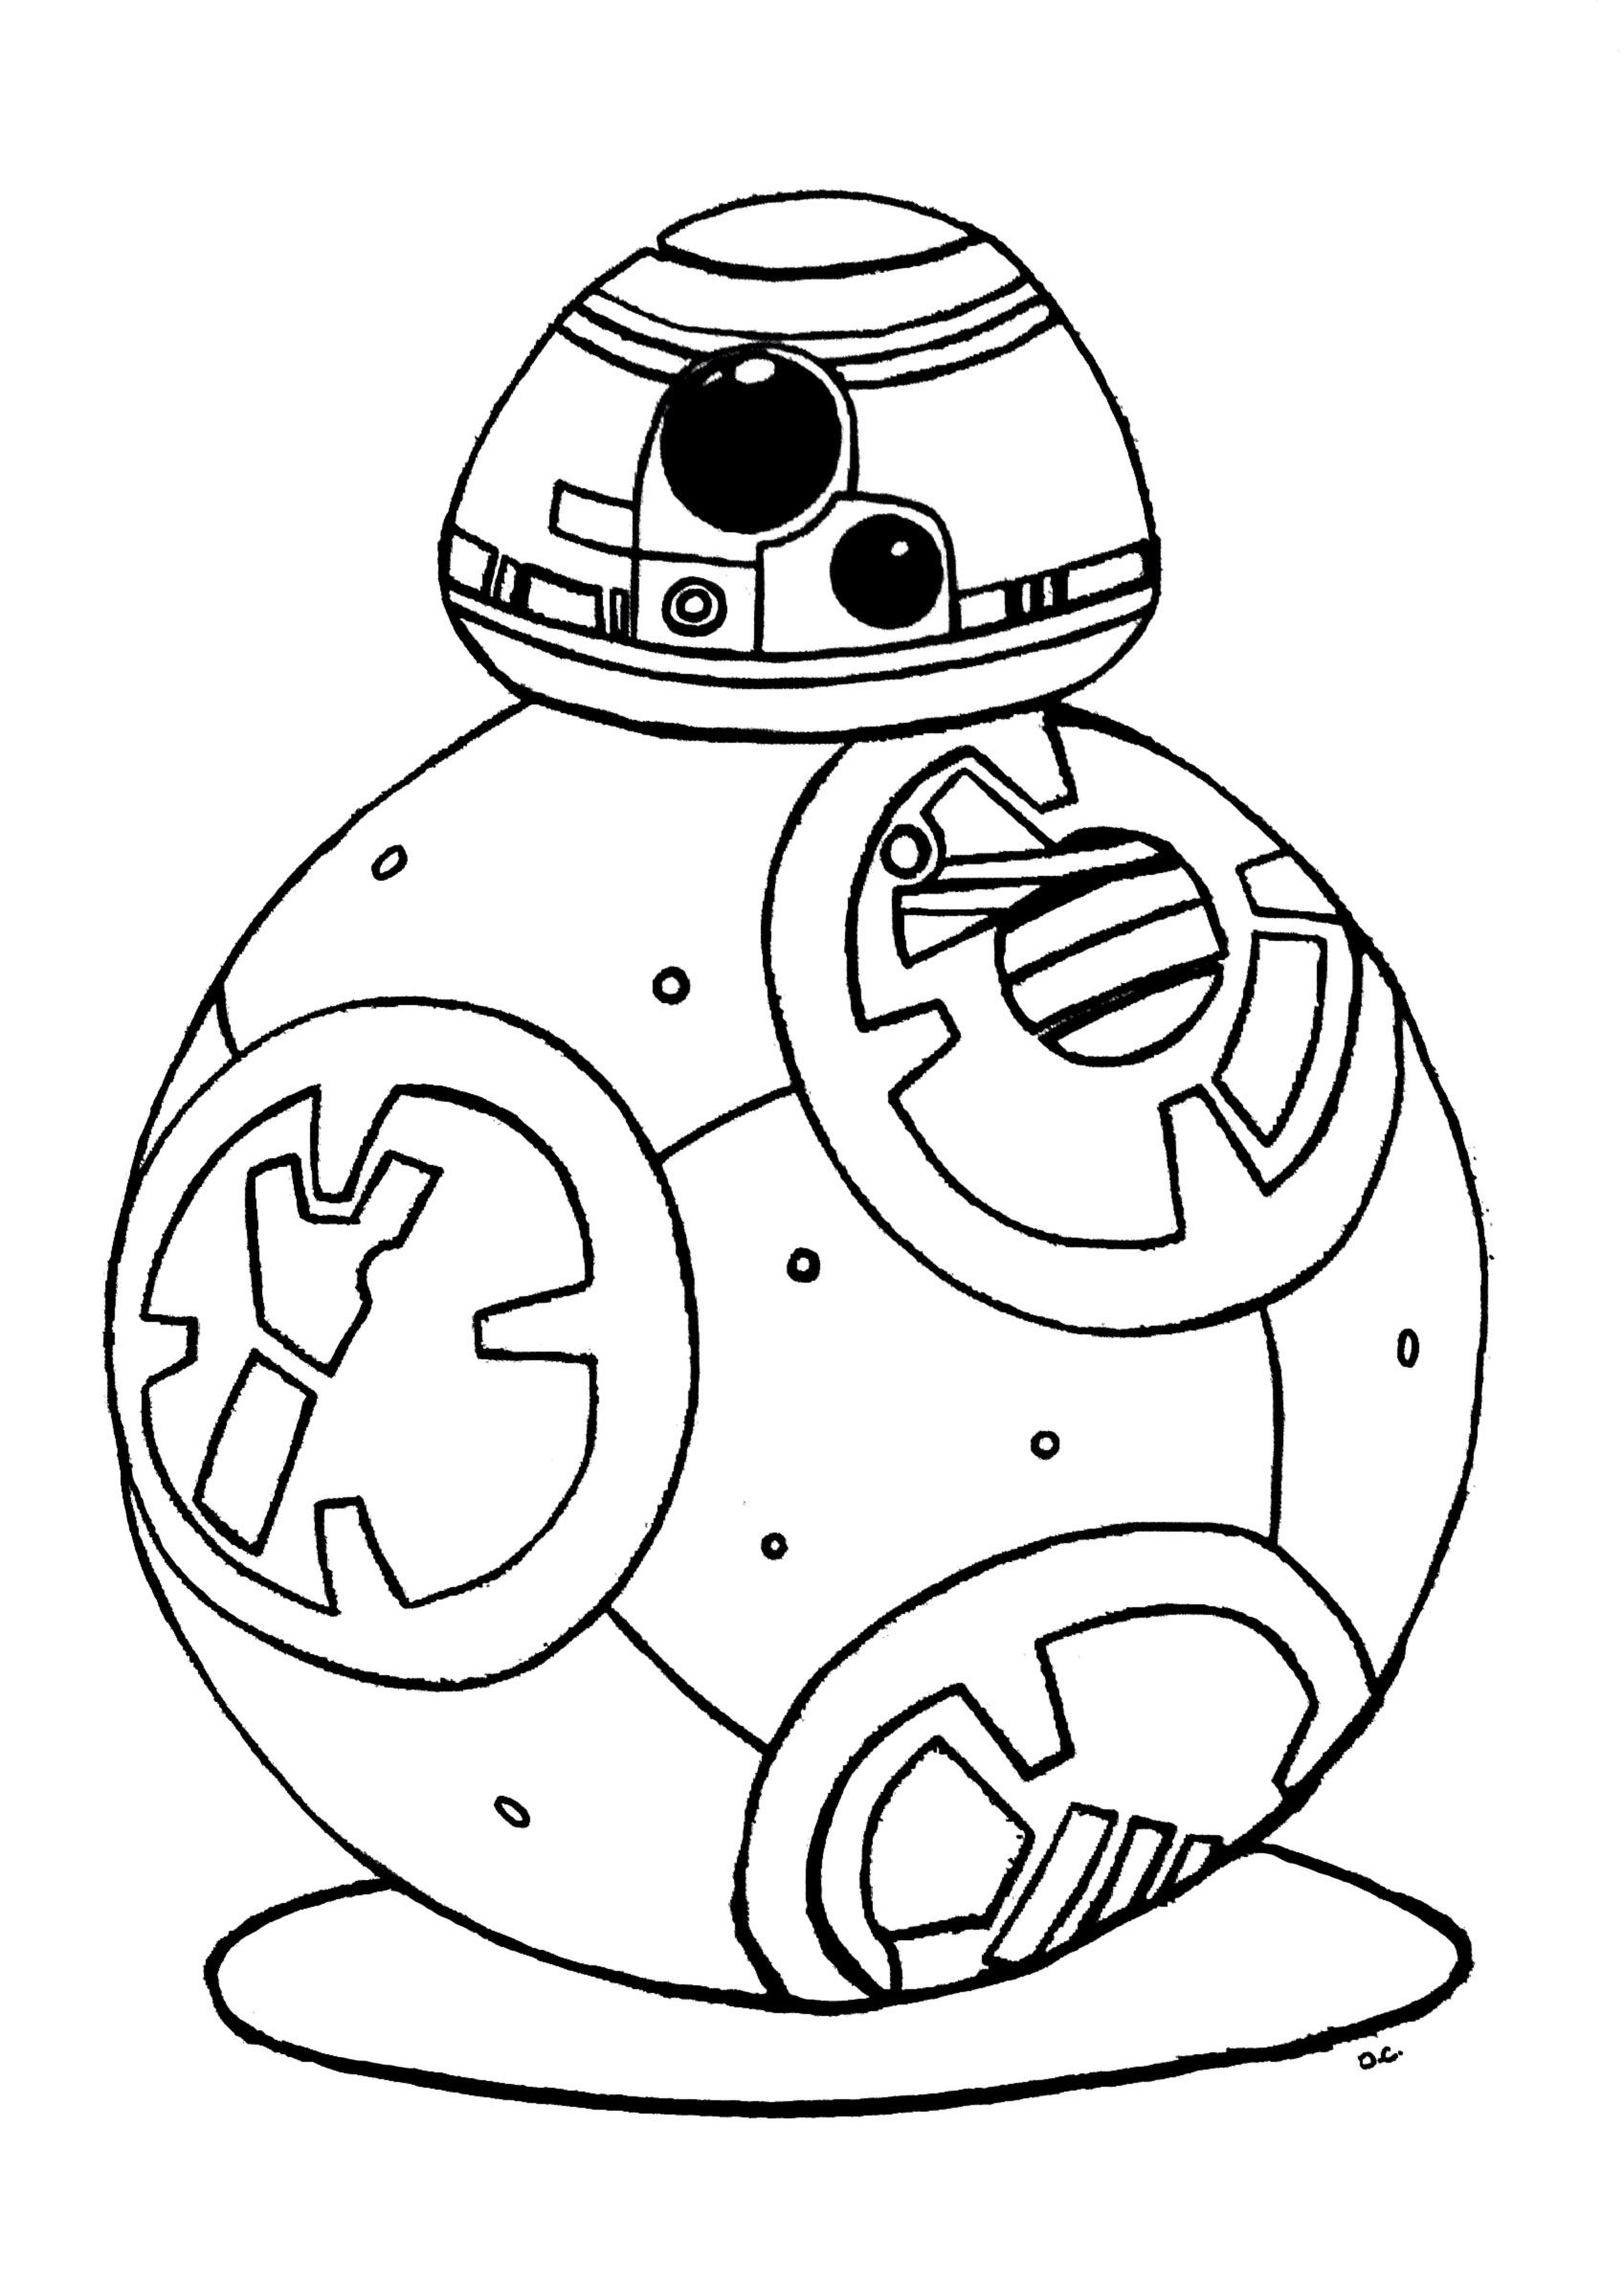 Bb8 Star Wars Printable Coloring Pages Coloriage Star Wars